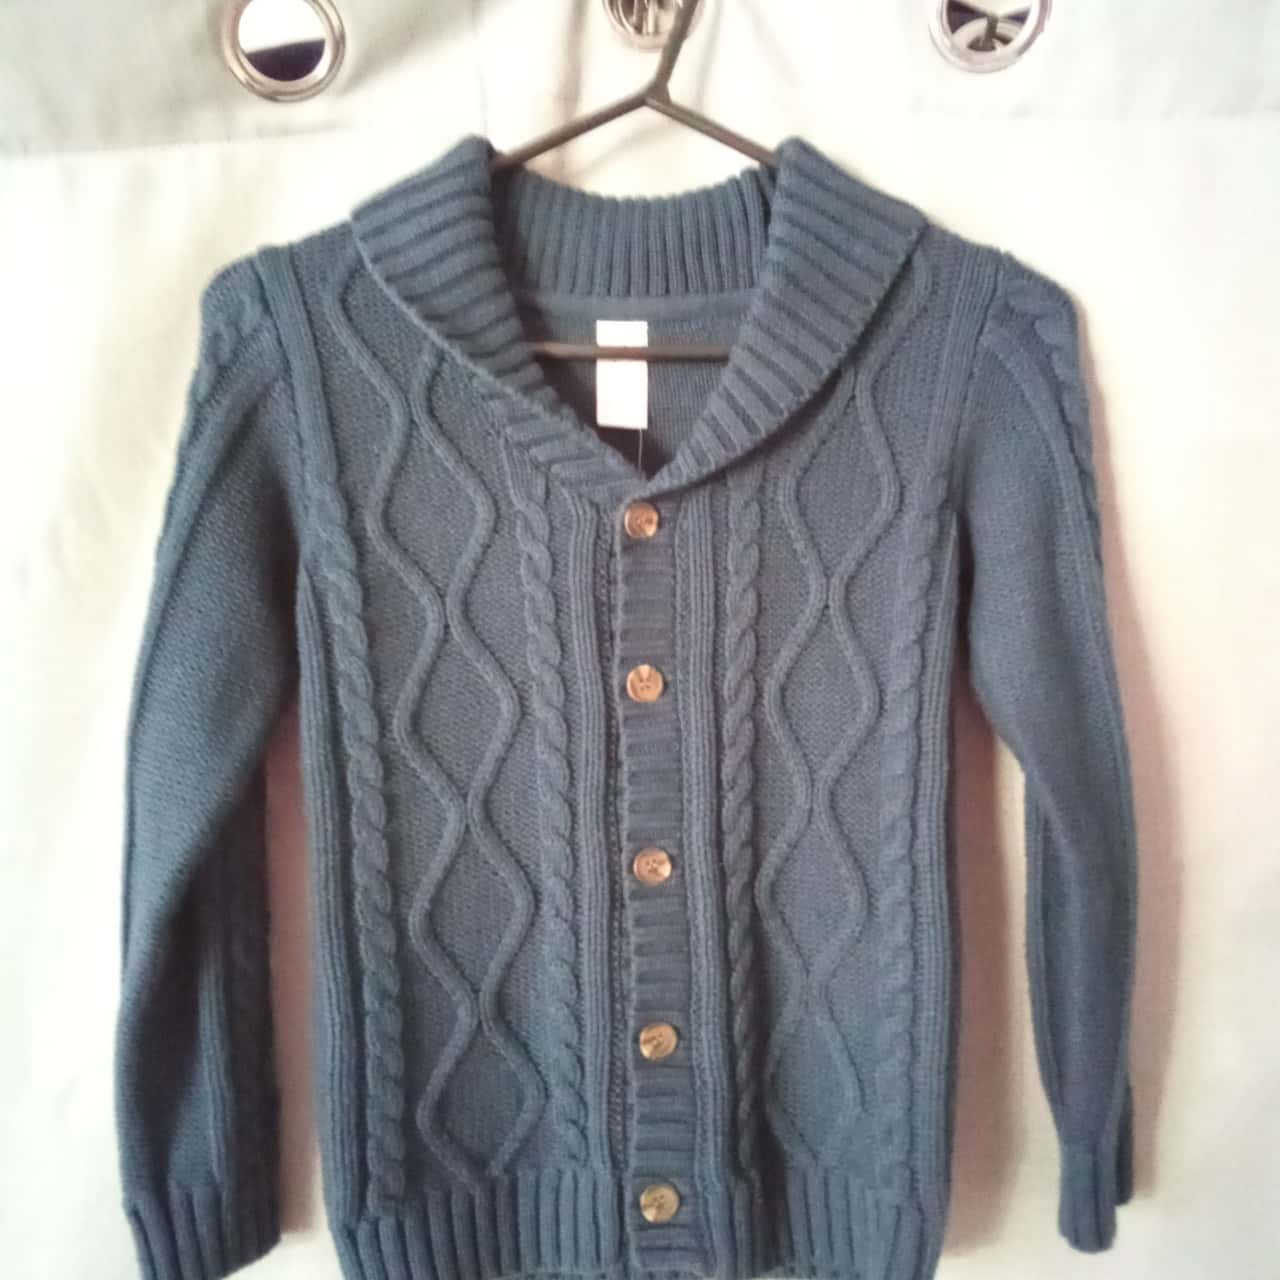 Anko Boys Navy Blue Cable Cardigan Size 7 NWT RRP $17.00